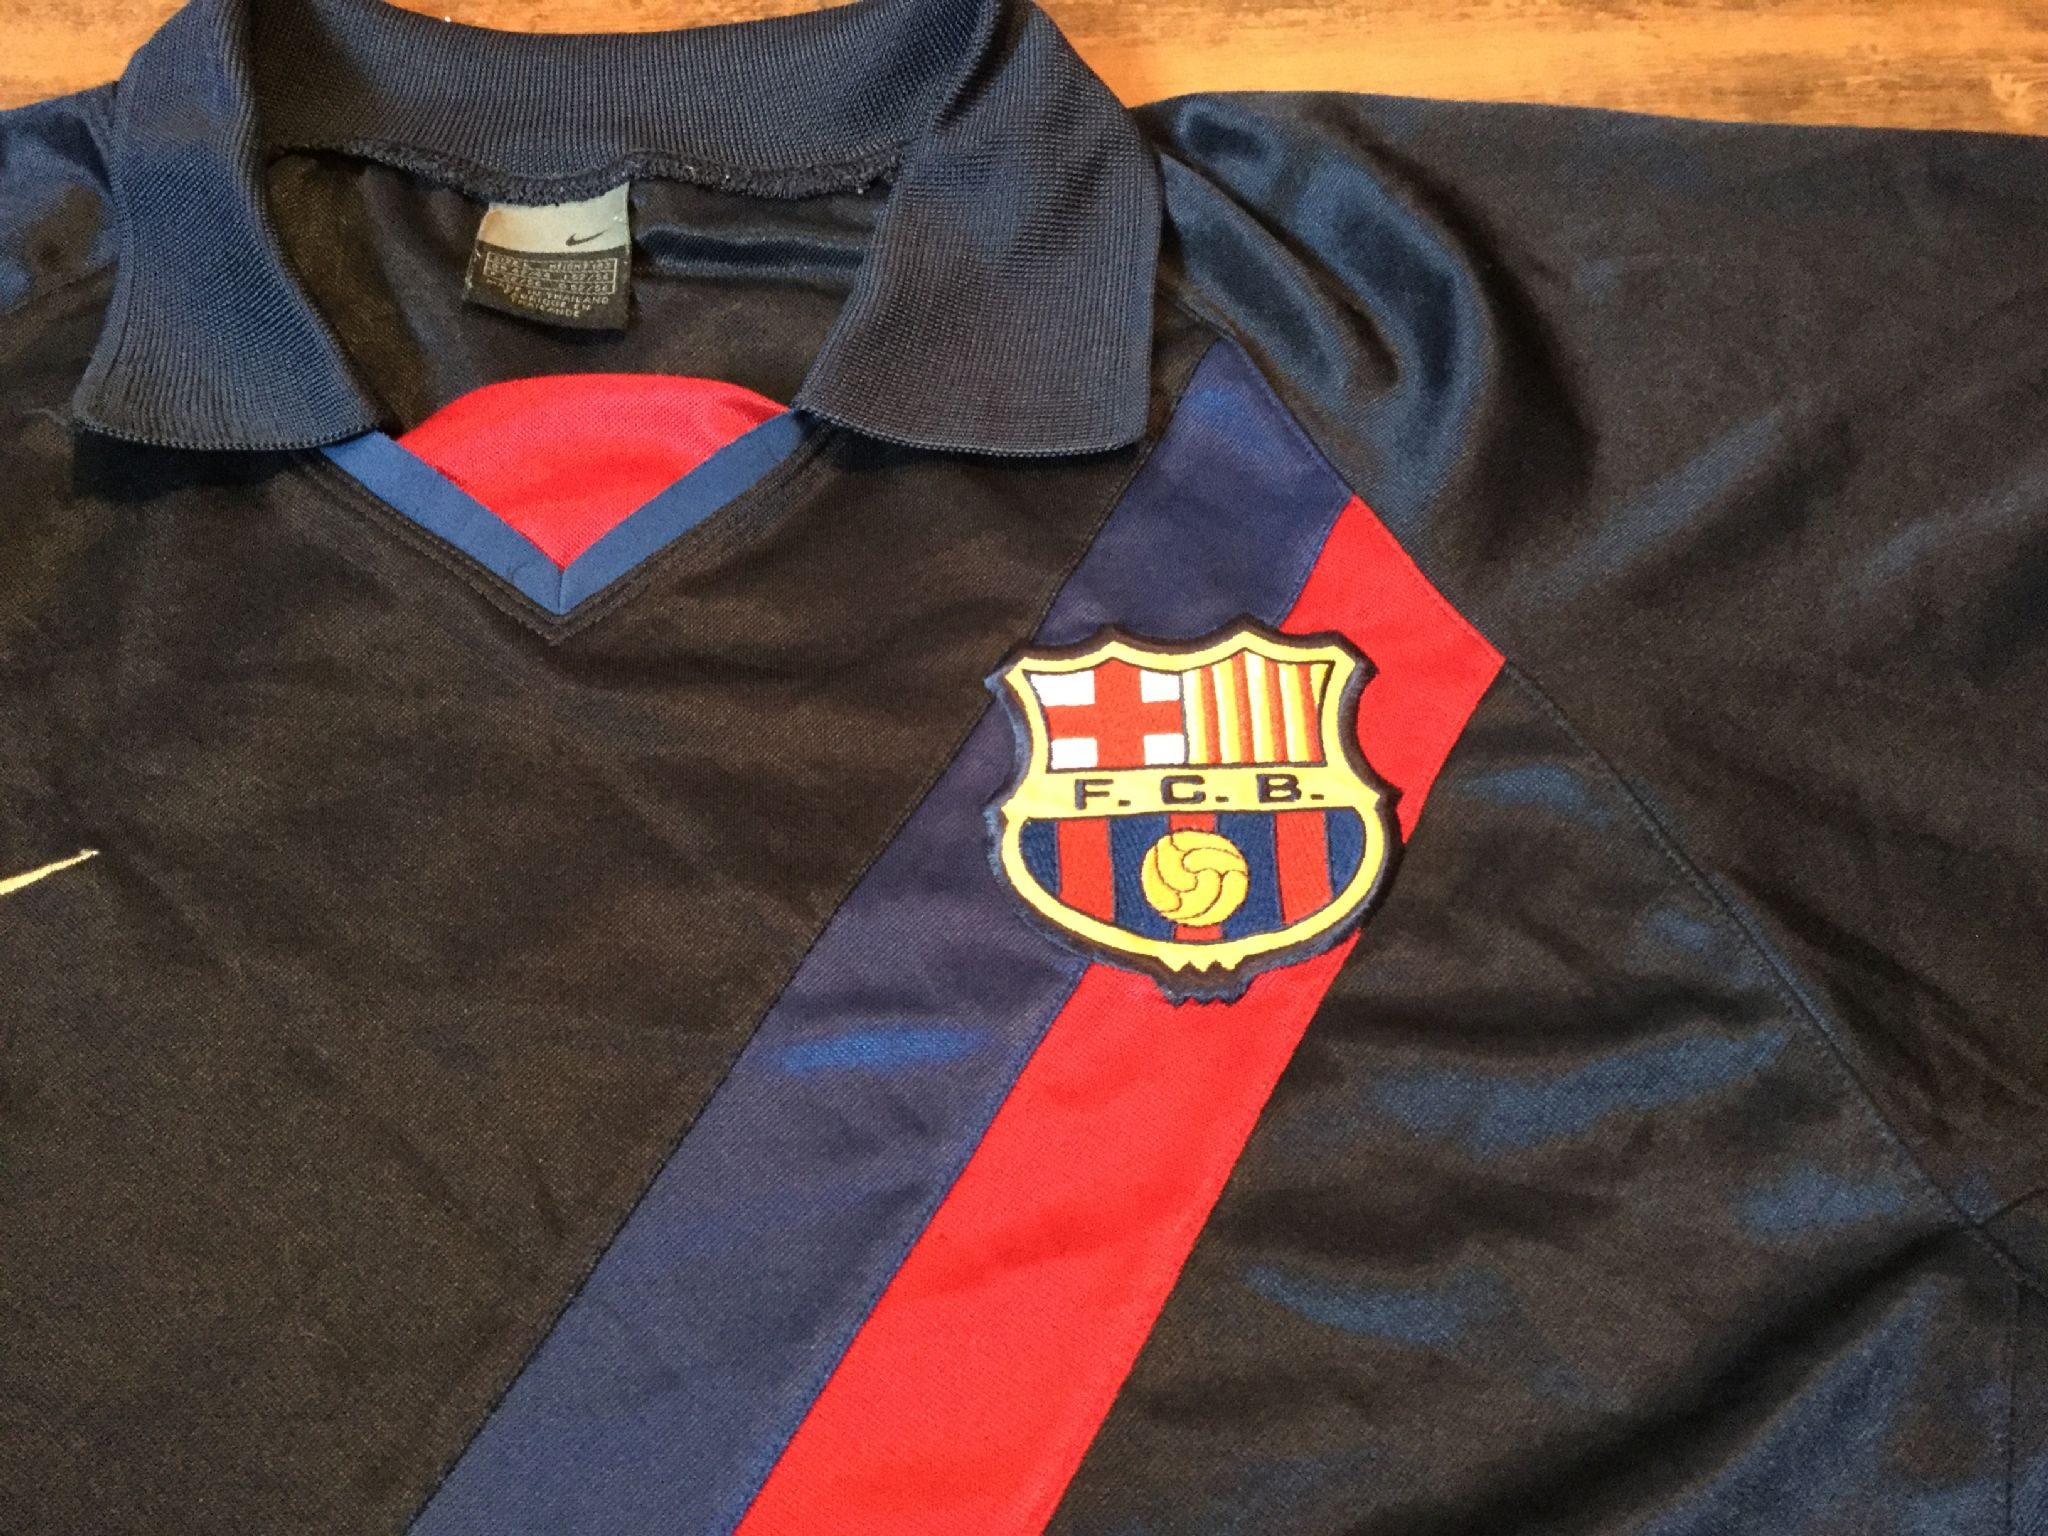 new styles b3a9f 11f63 Global Classic Football Shirts | 2002 Barcelona Vintage Old ...